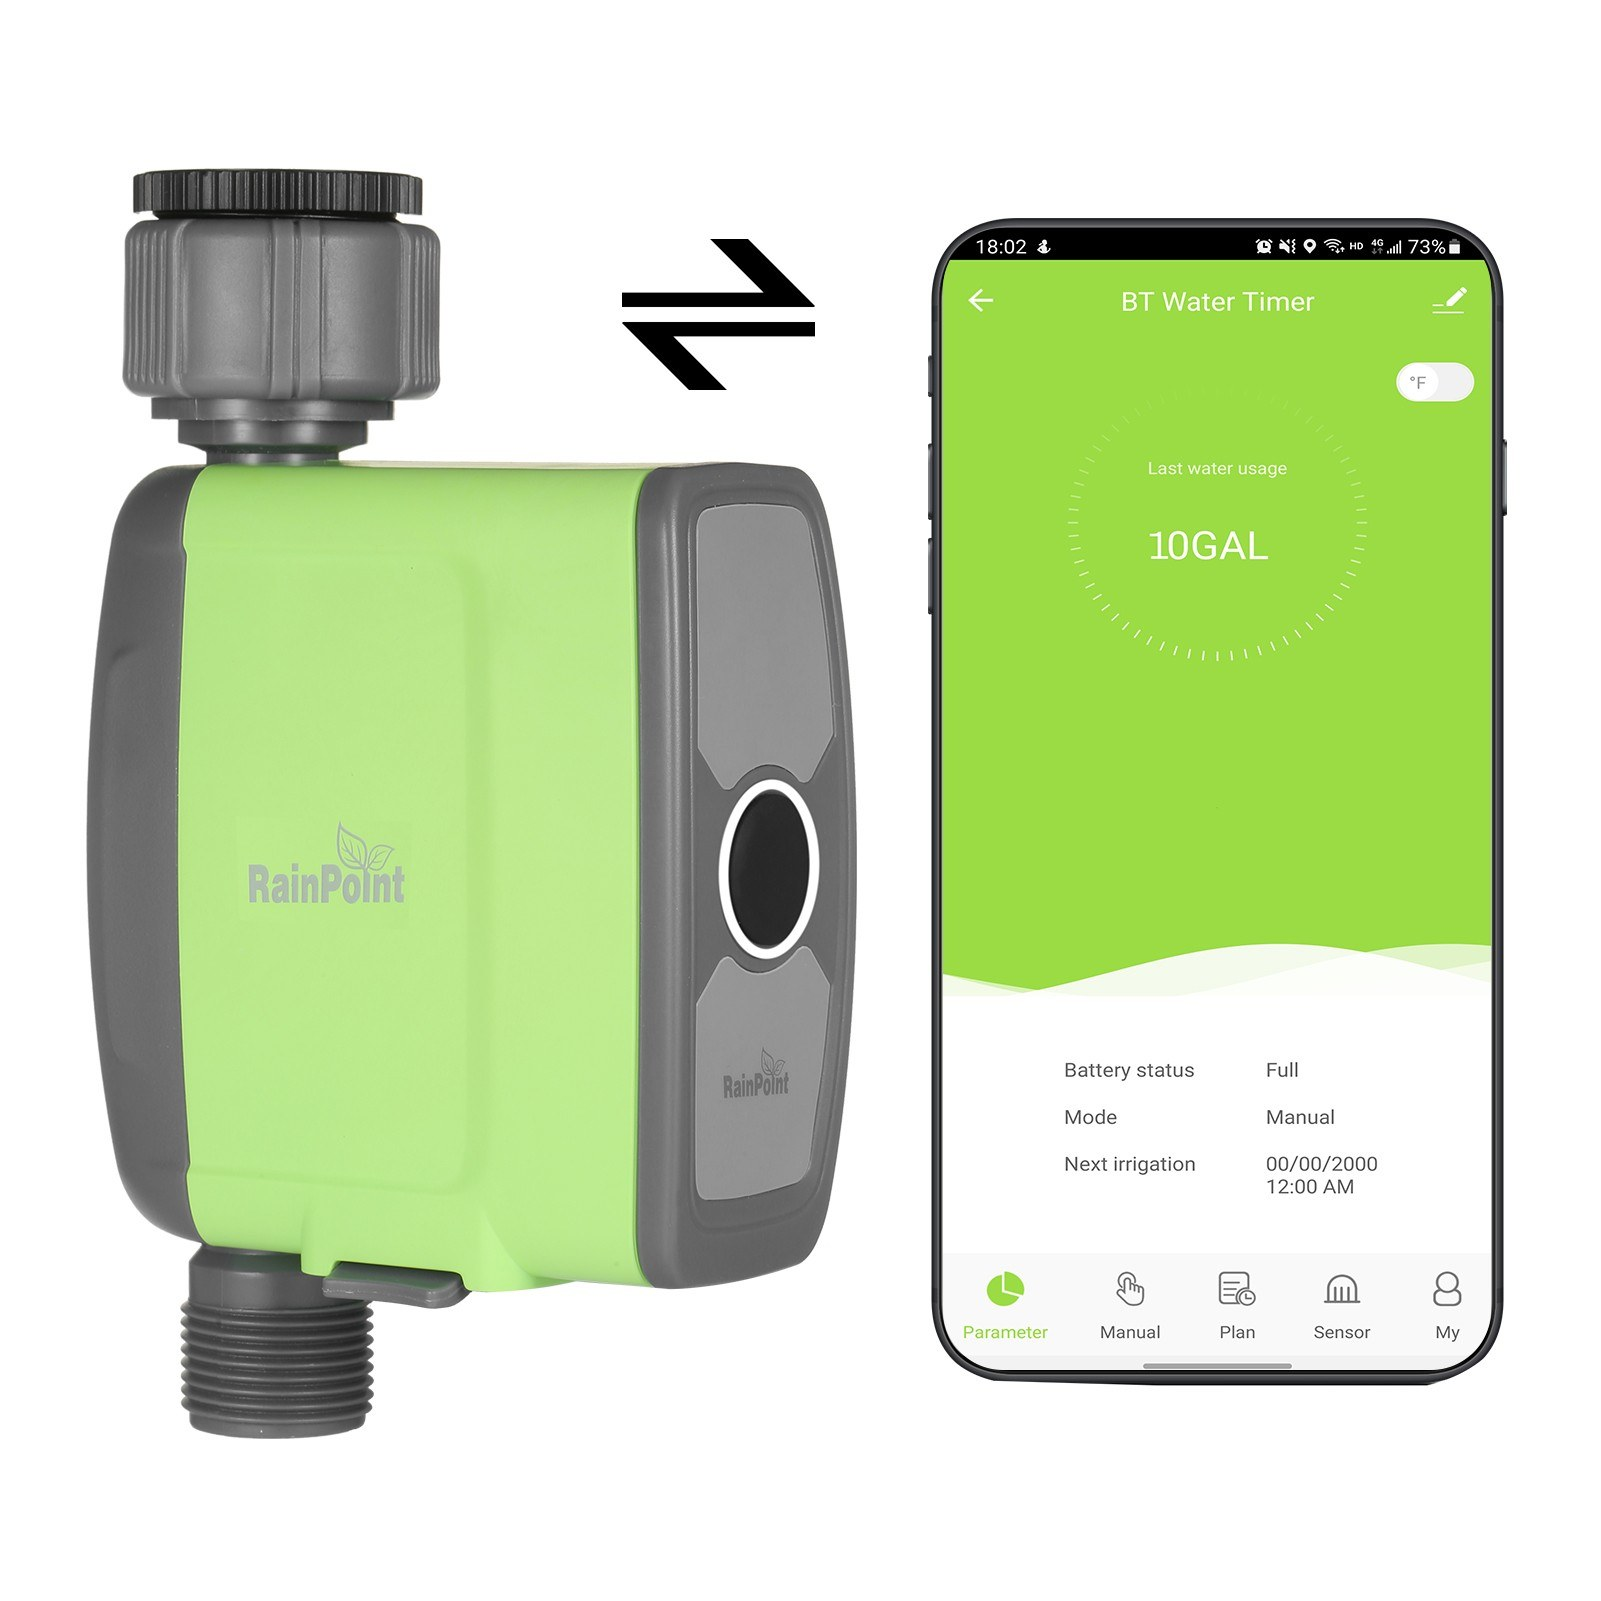 tomtop.com - 38% OFF Programmable BT WiFi Water Timer, Free Shipping $43.49